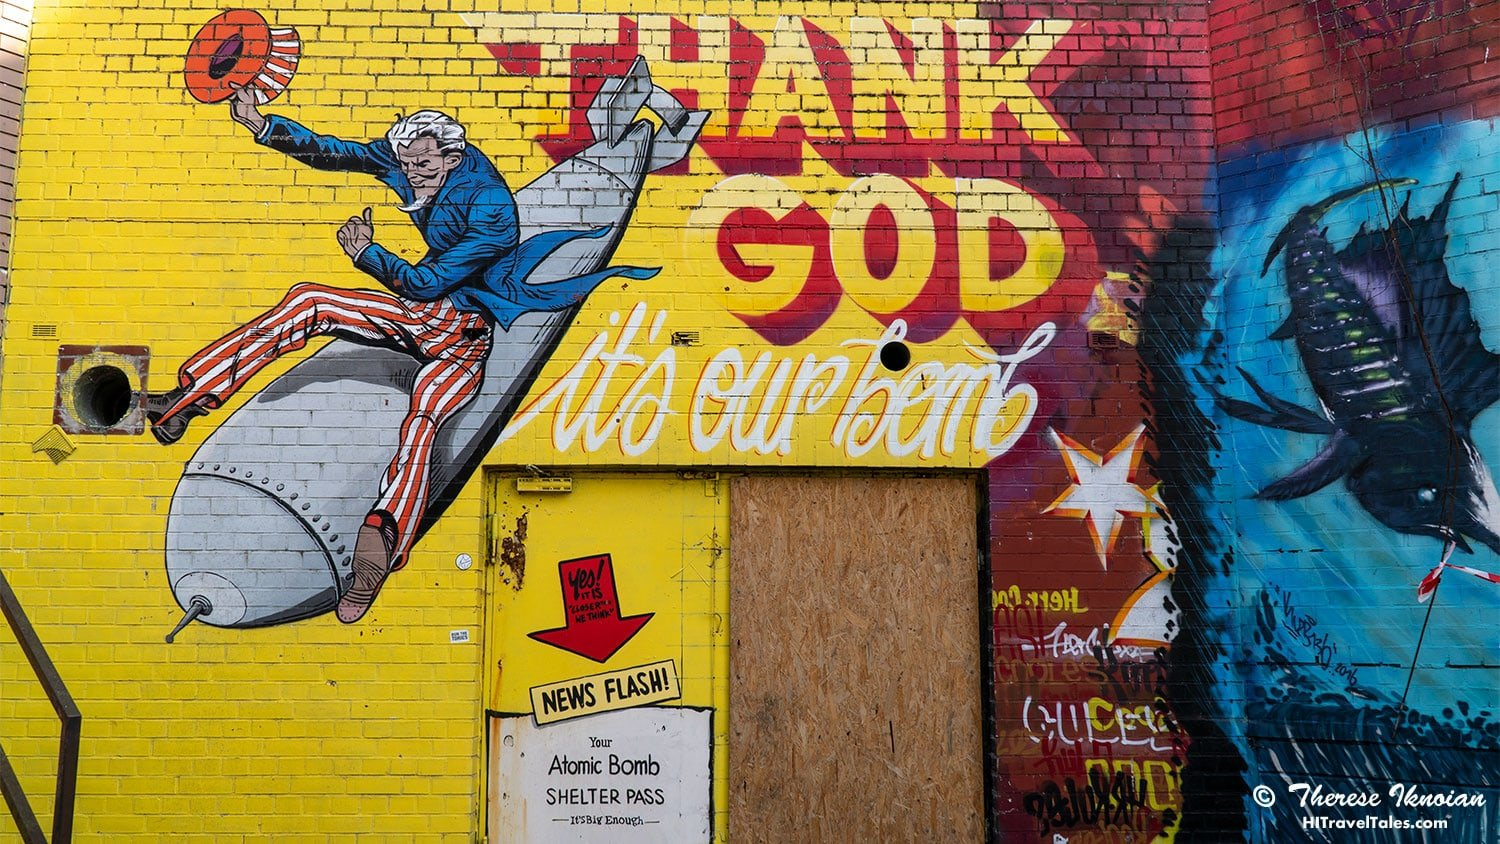 Uncle Sam riding on a bomb depicted in street art at Teufelsberg.